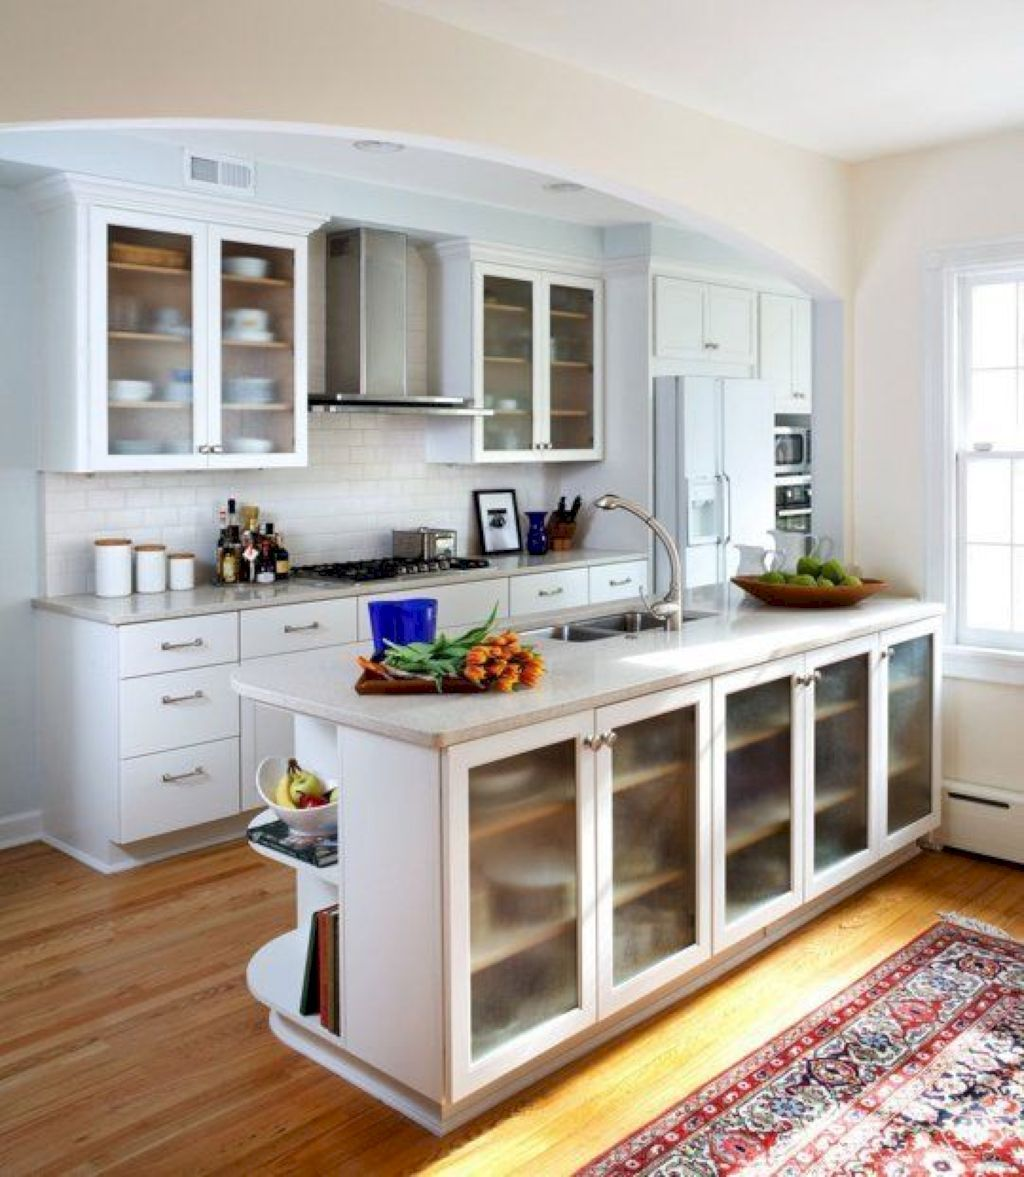 30 Best Small Kitchen Remodel Ideas  Kitchens Remodeled Kitchens Interesting Small Remodeled Kitchens Ideas Inspiration